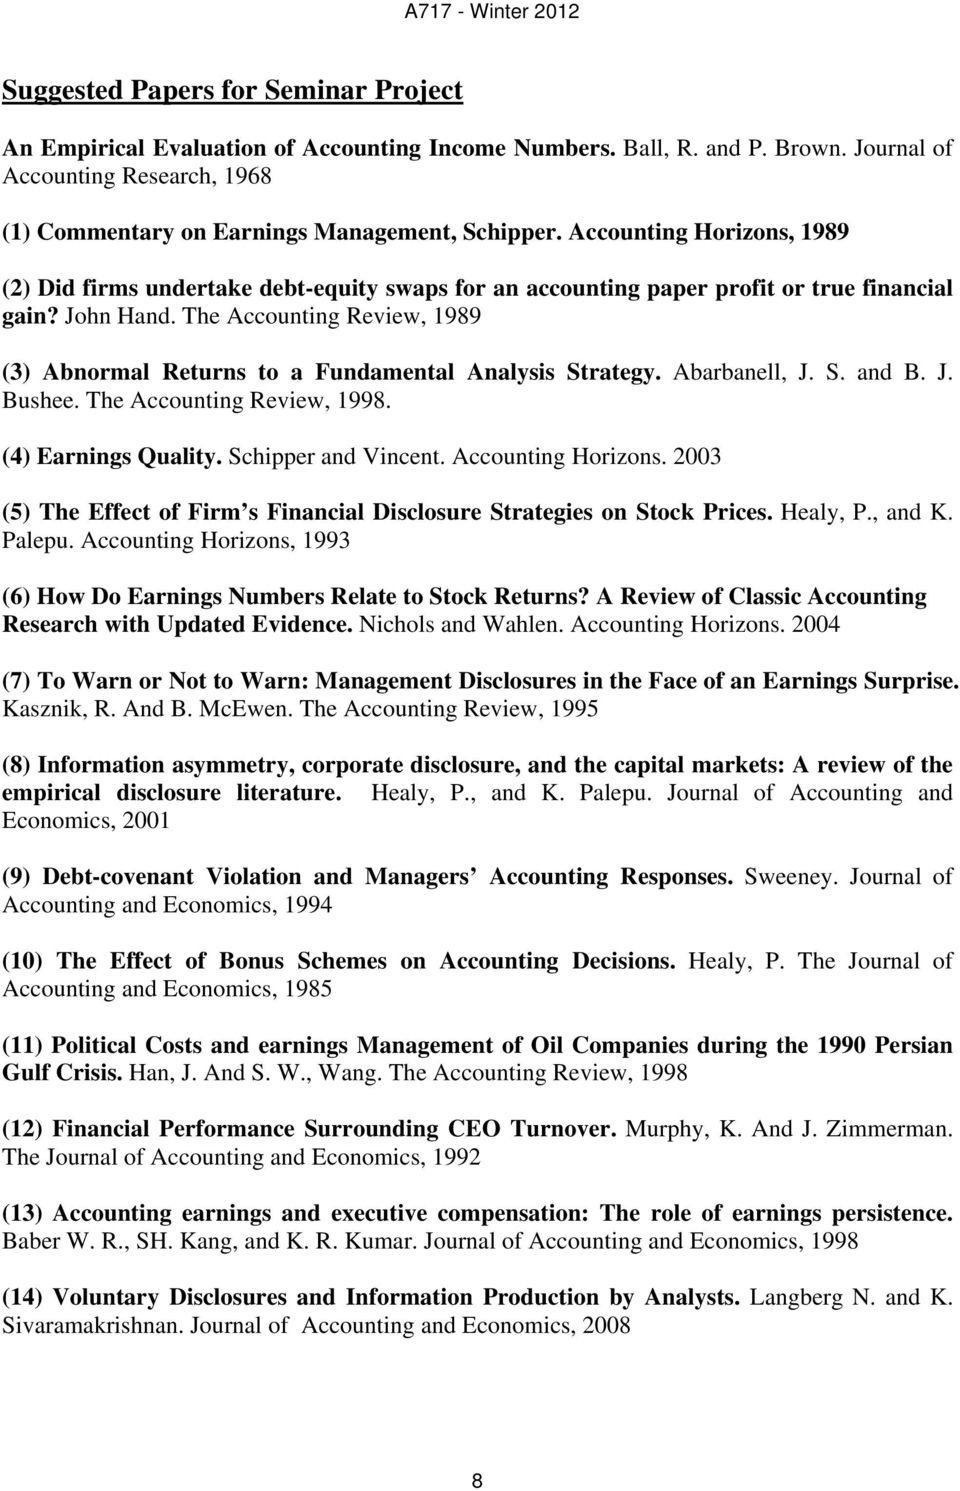 The Accounting Review, 1989 (3) Abnormal Returns to a Fundamental Analysis Strategy. Abarbanell, J. S. and B. J. Bushee. The Accounting Review, 1998. (4) Earnings Quality. Schipper and Vincent.